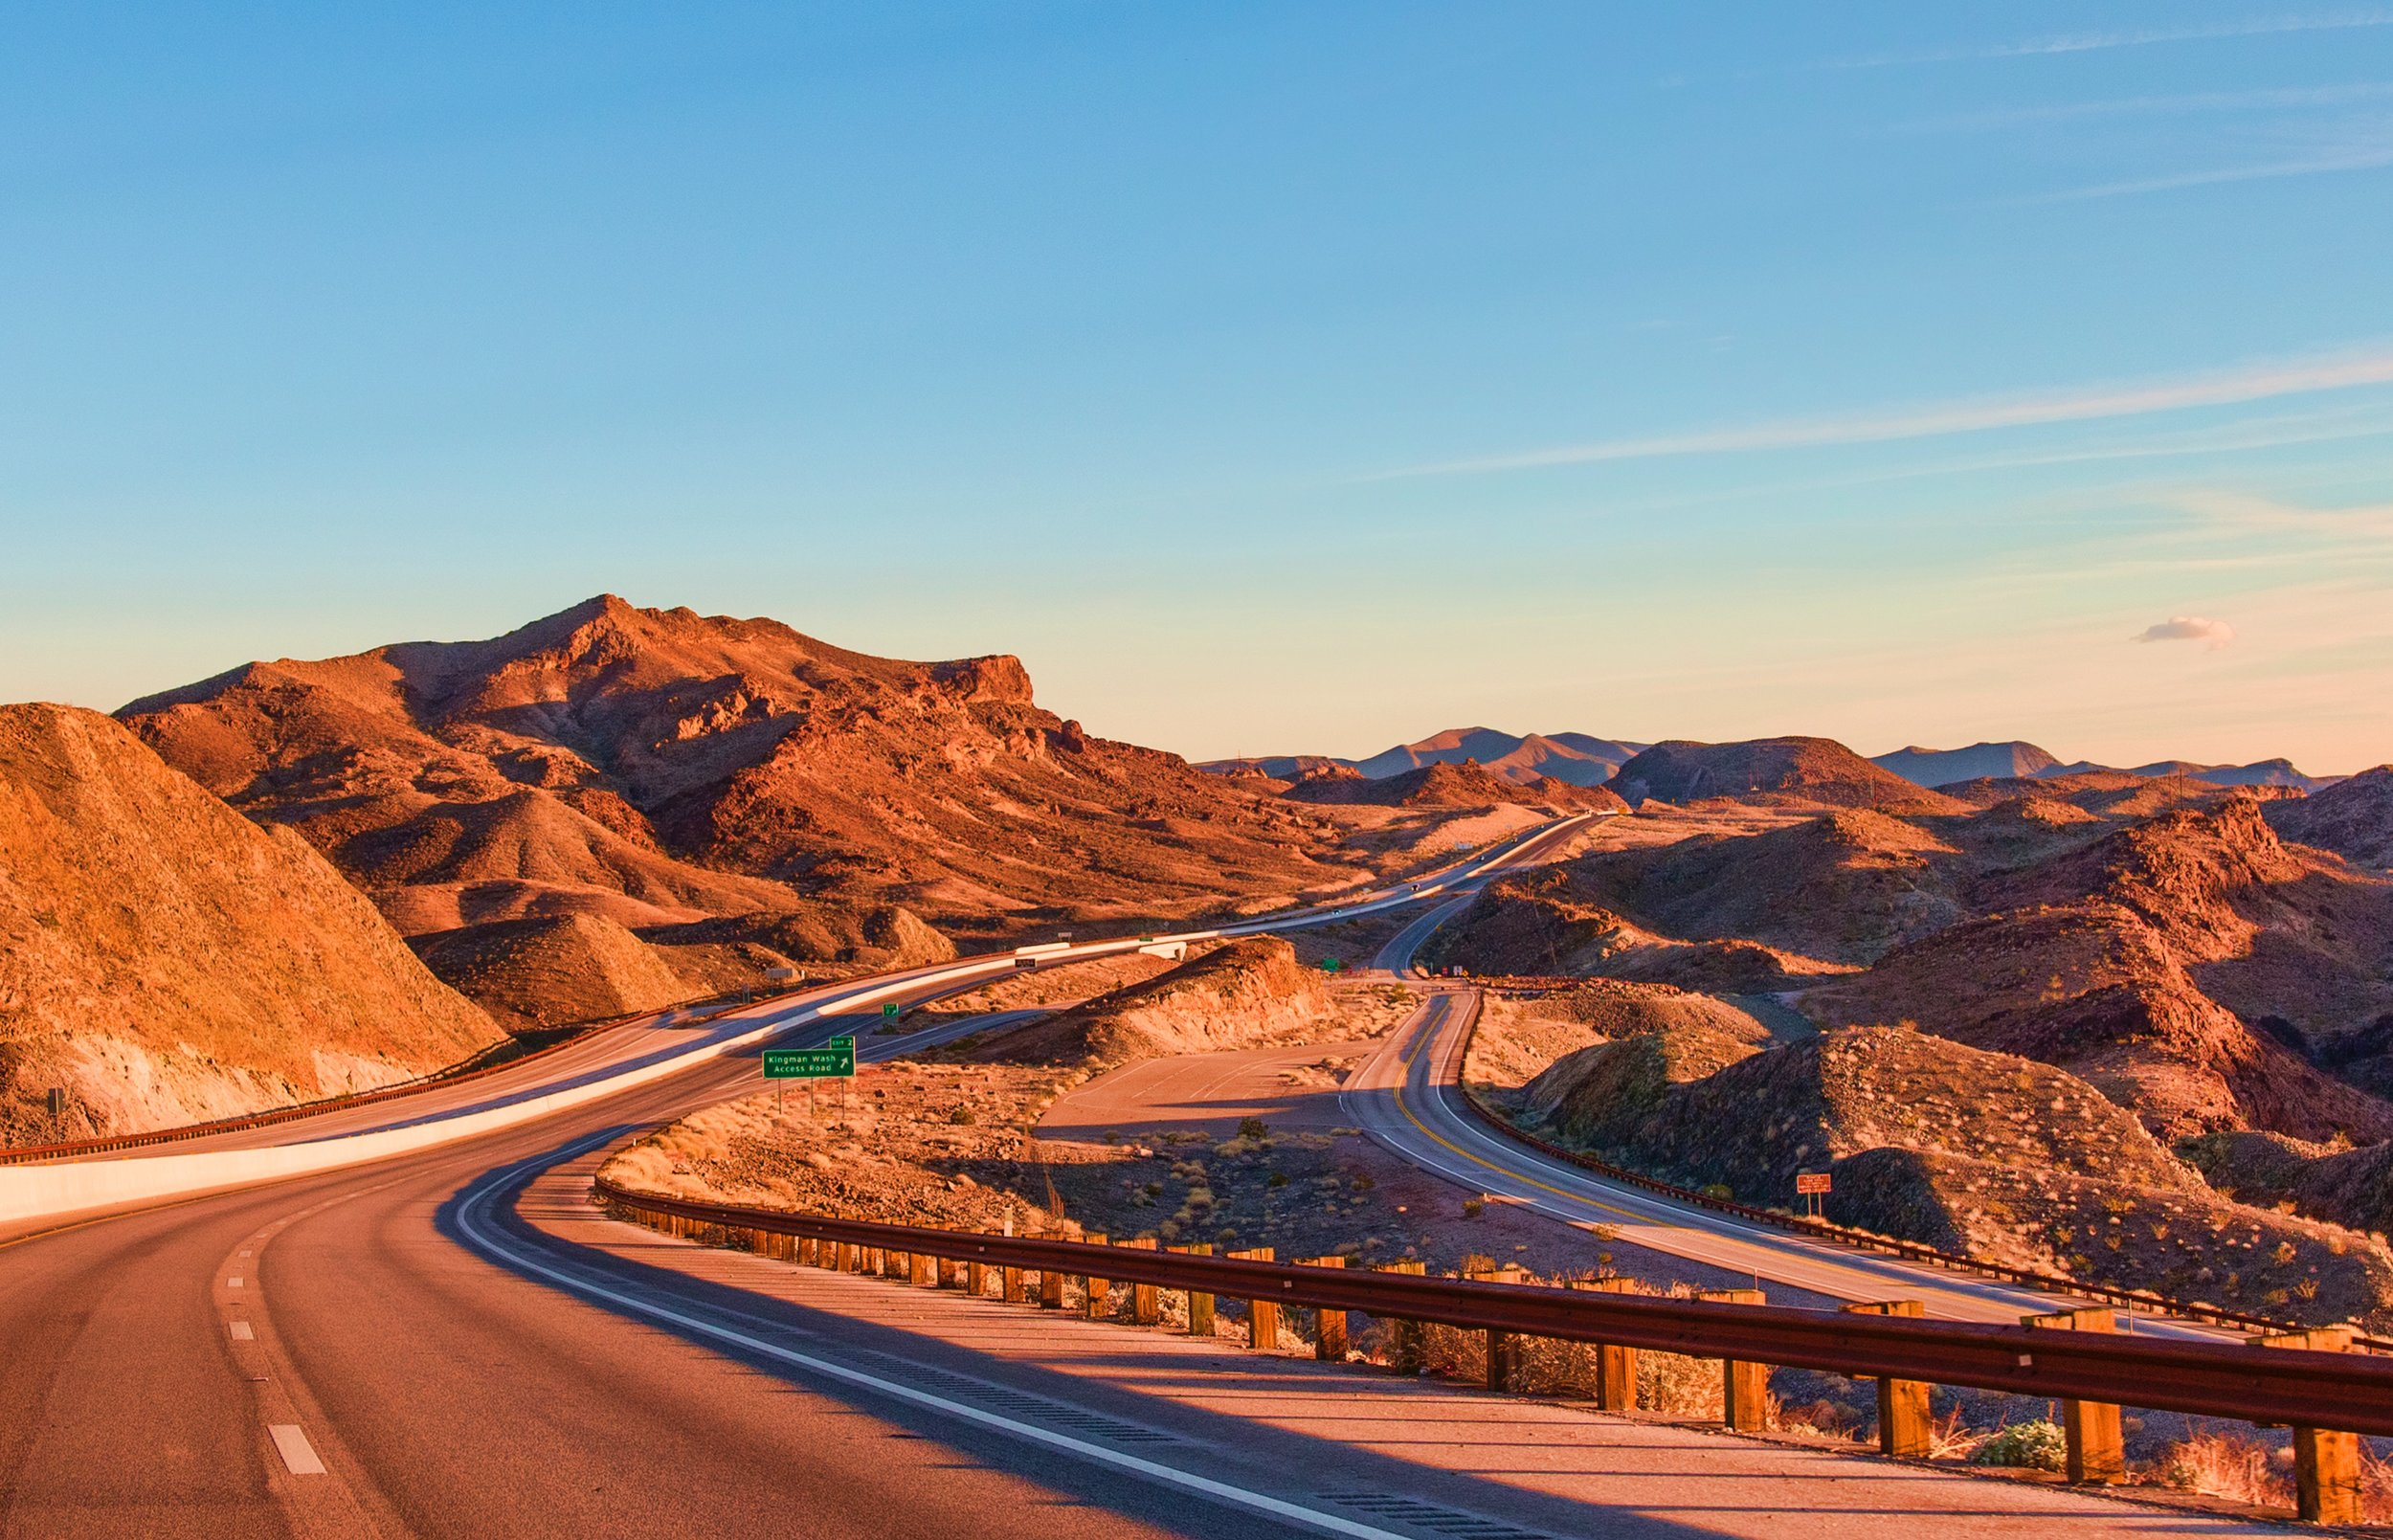 Deserts in the USA. Photo source Quintin Gellar on Pexels.